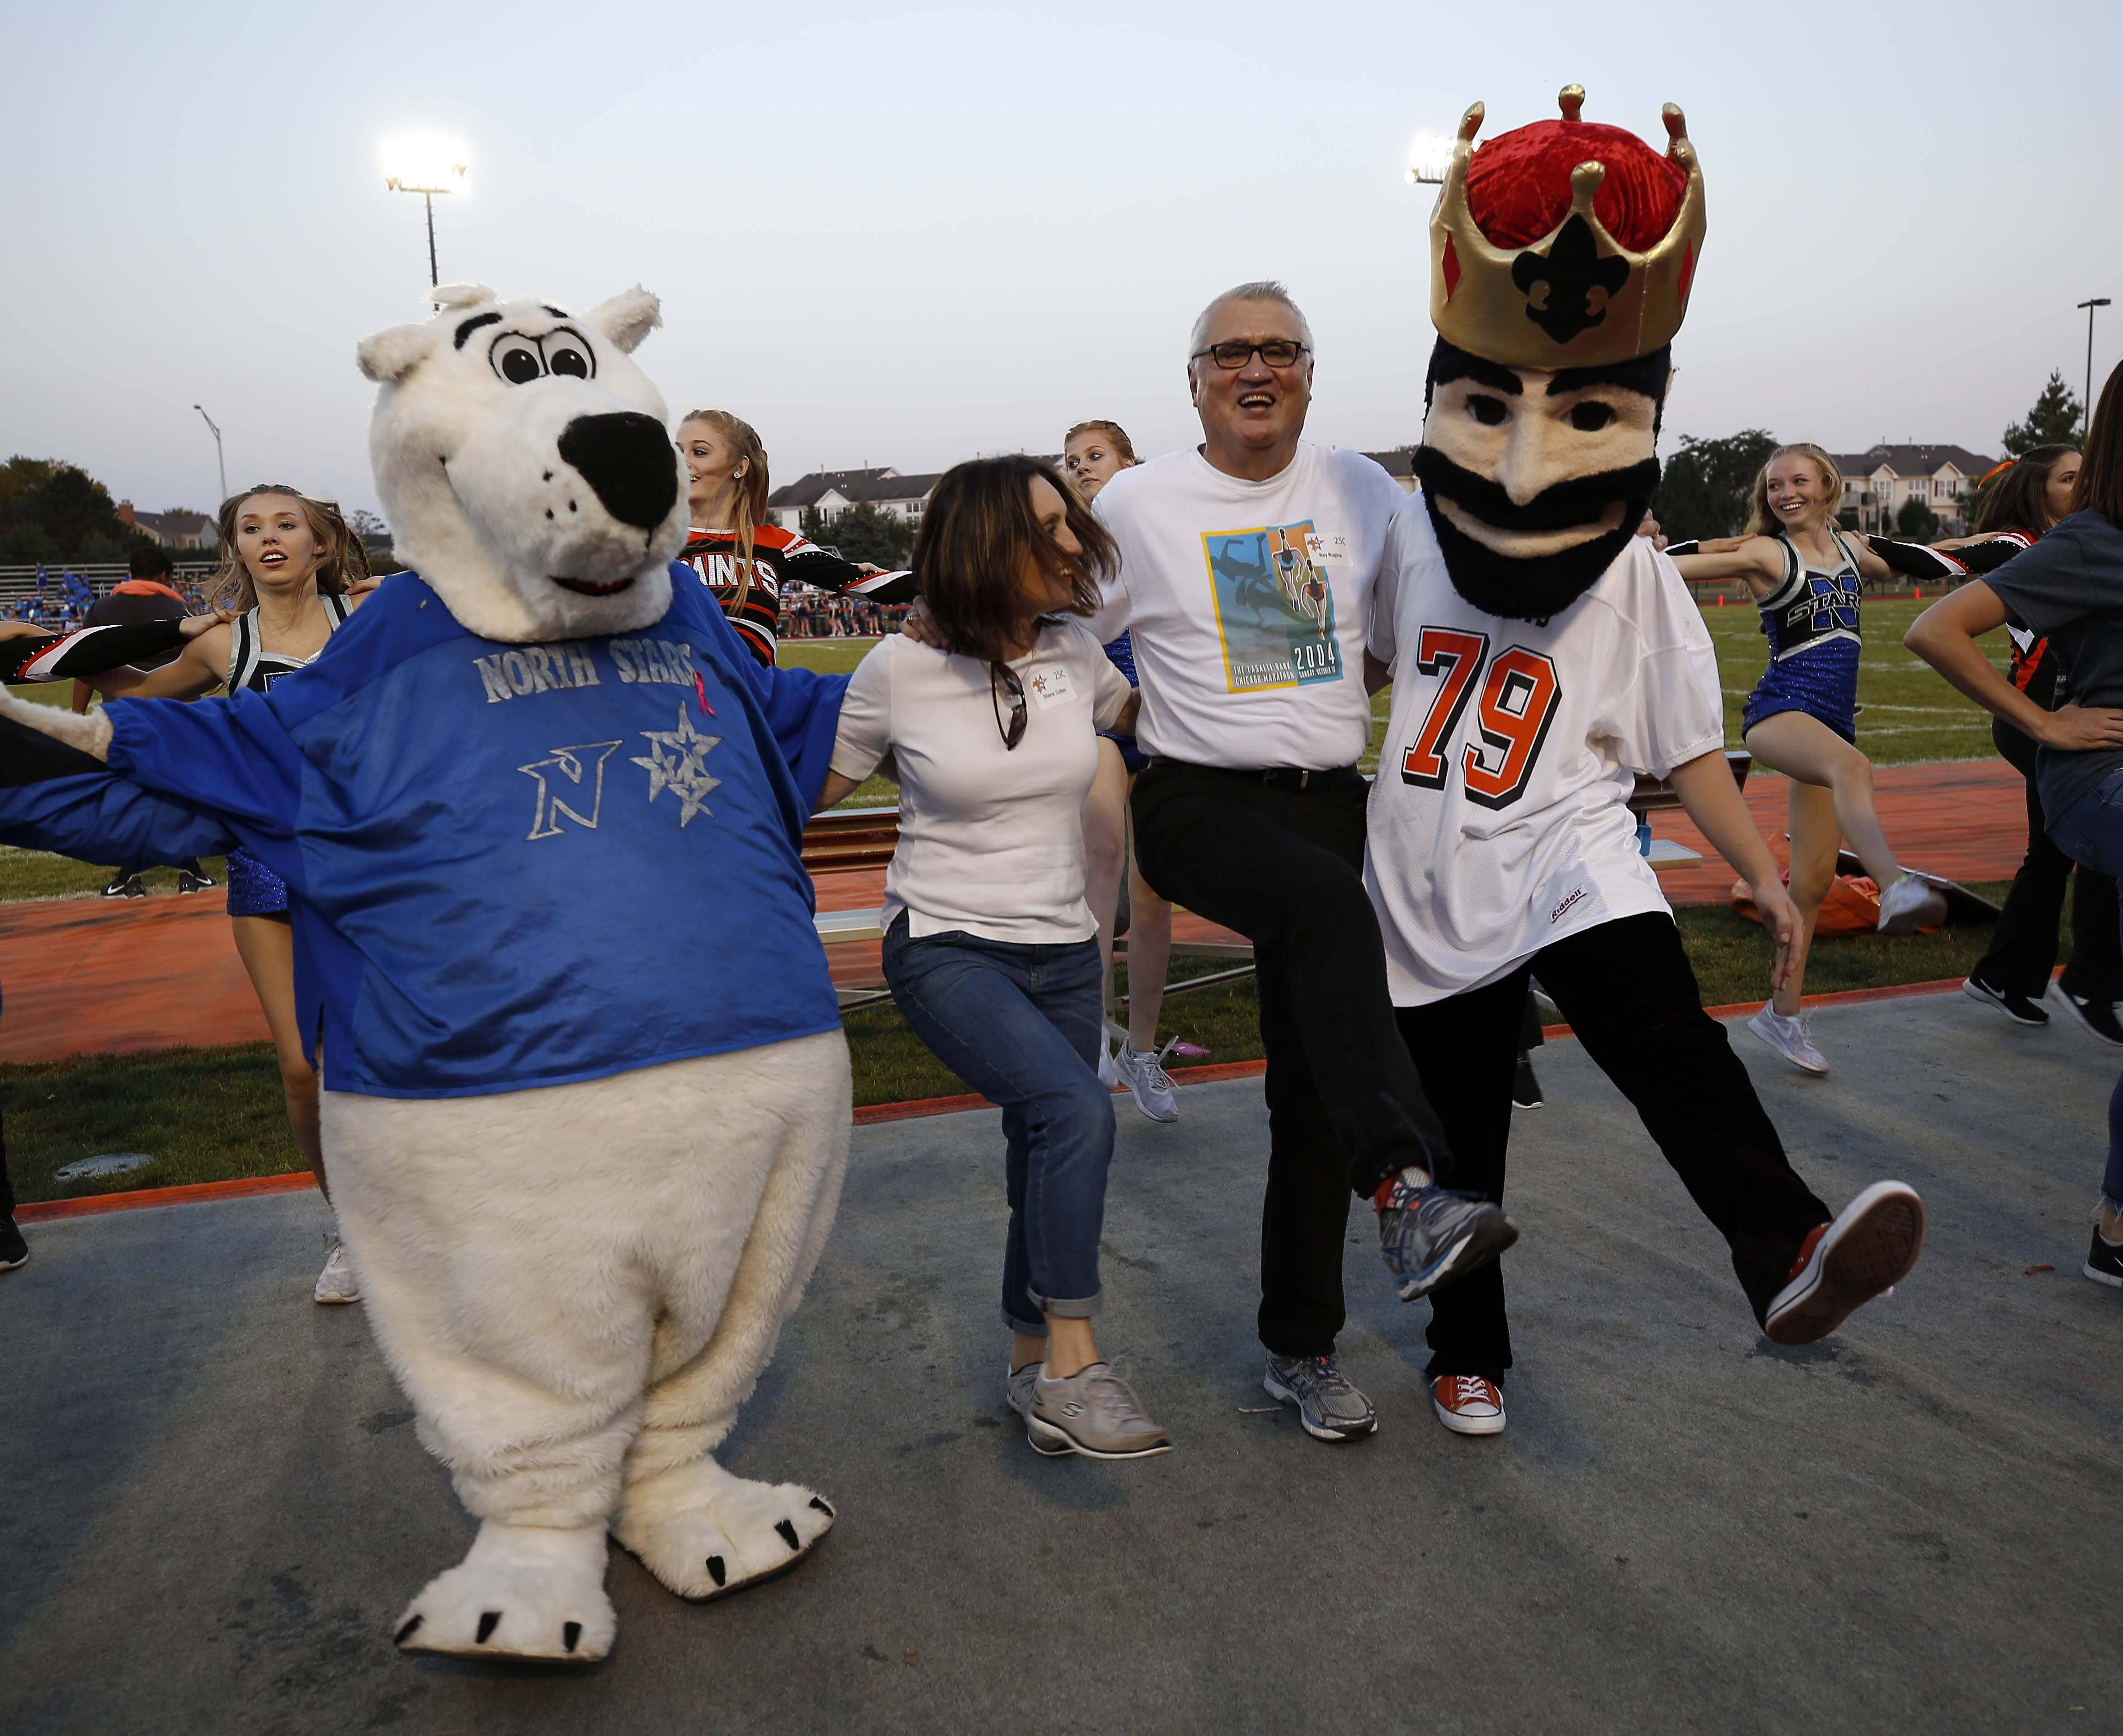 Brian Hill/bhill@dailyherald.com St. Charles Mayor Ray Rogina and Diane Cullen are sandwiched between the East and North mascots Friday during the annual Kick-A-Thon for St. Charles East and North high schools to raise money for cancer research.